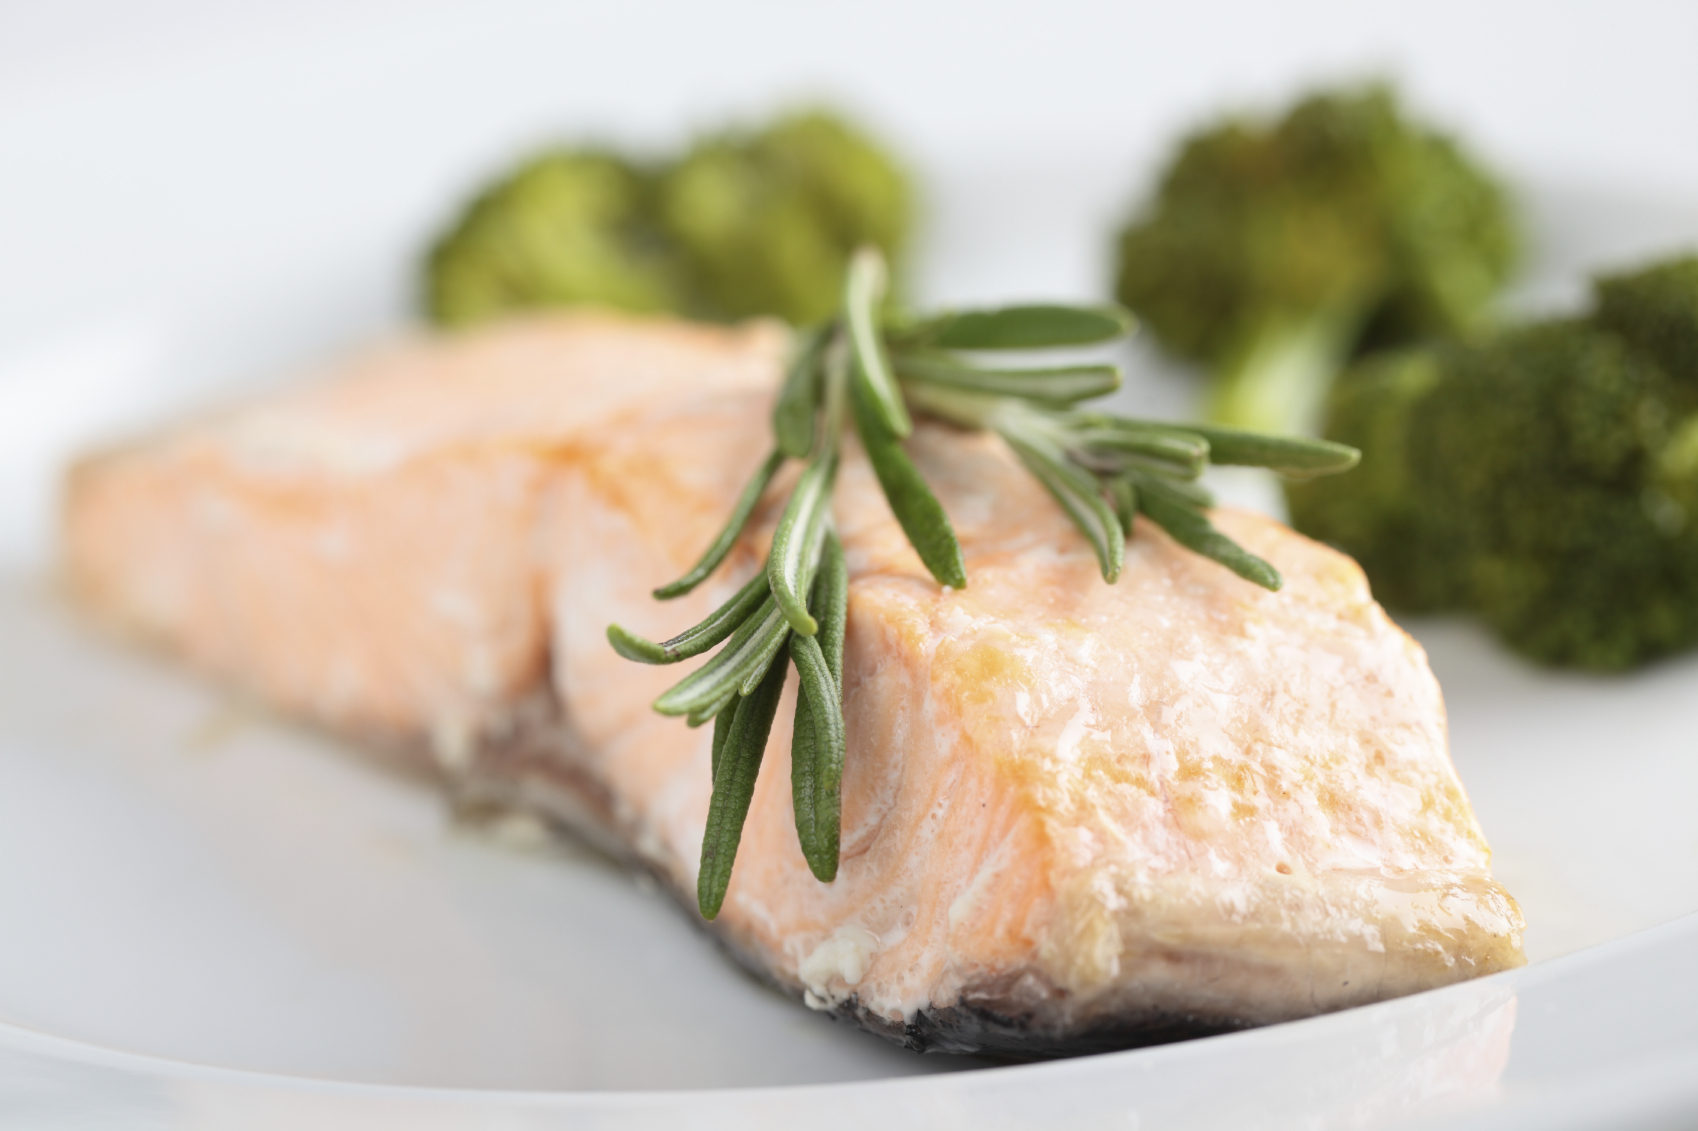 Don't waste your time with dangerous and useless SSRIs for treating depression. One serving of this protein-packed food a week is twice as effective—and safe.